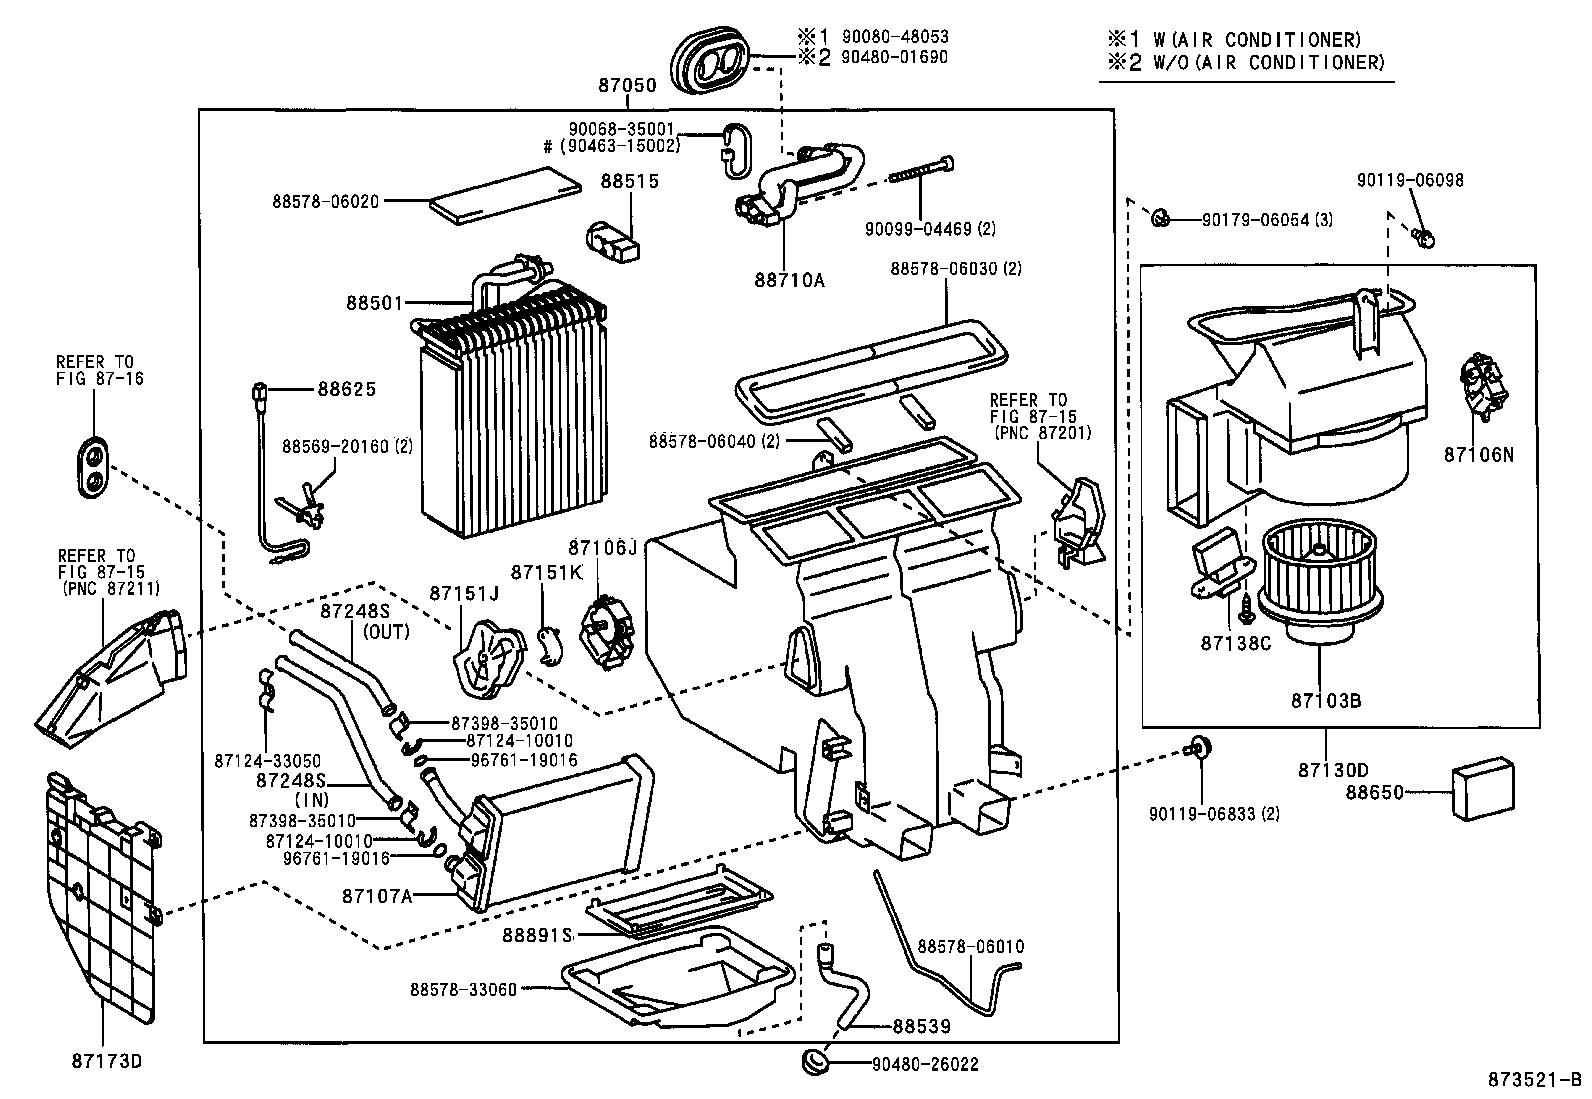 Sportster Wiring Diagram 1994 Schematics Diagrams Seadoo Gtx Electrical House Symbols Images Gallery